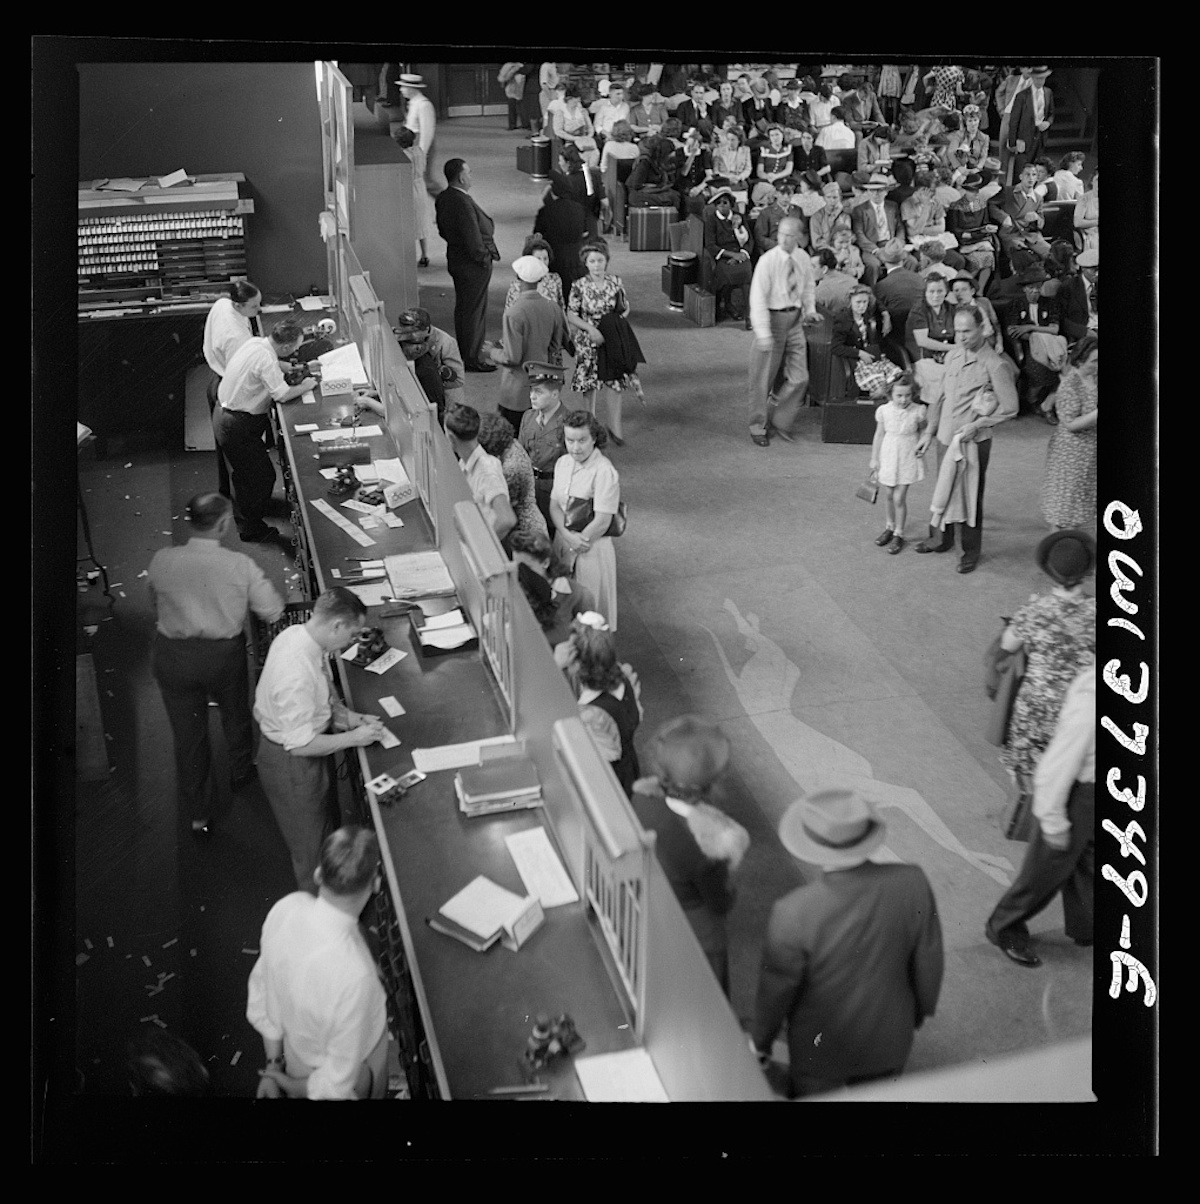 Pittsburgh, Pennsylvania. People buying tickets at the Greyhound bus terminal